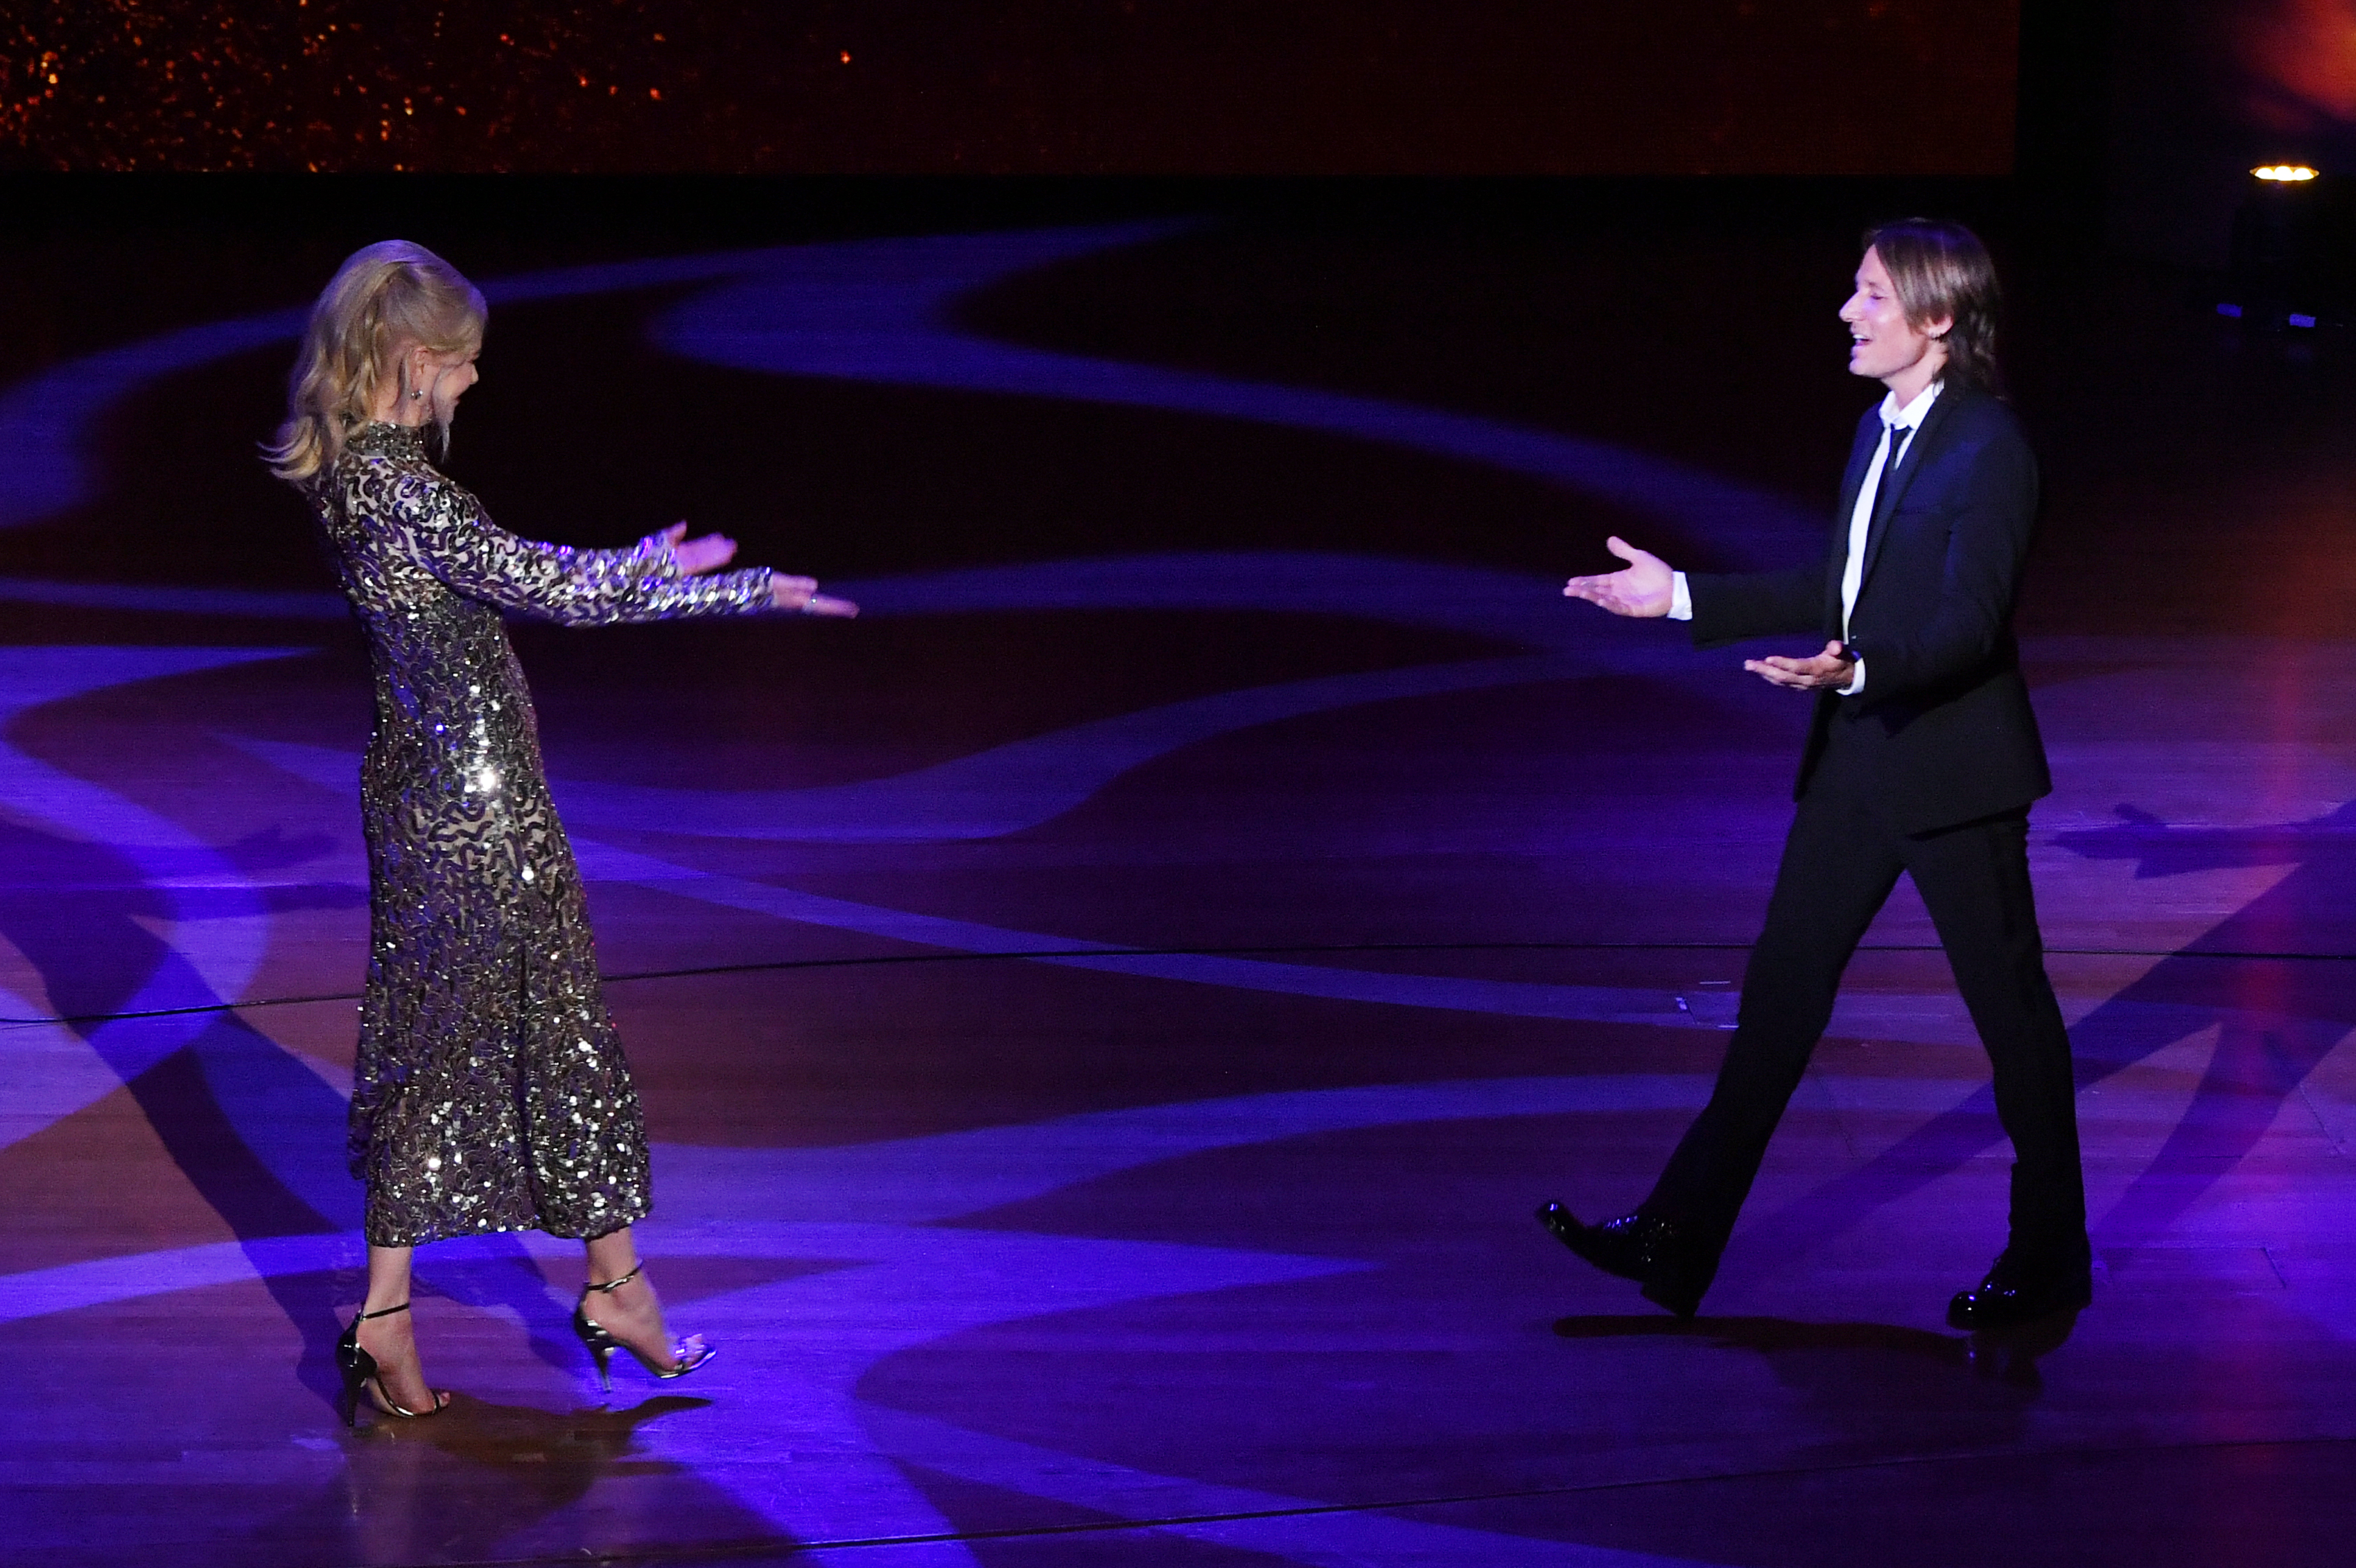 NEW YORK, NY - MAY 29: Actress Nicole Kidman (L) and musical artist Keith Urban embrace onstage during Lincoln Center's American Songbook Gala at Alice Tully Hall on May 29, 2018 in New York City. (Photo by Mike Coppola/Getty Images for Lincoln Center)